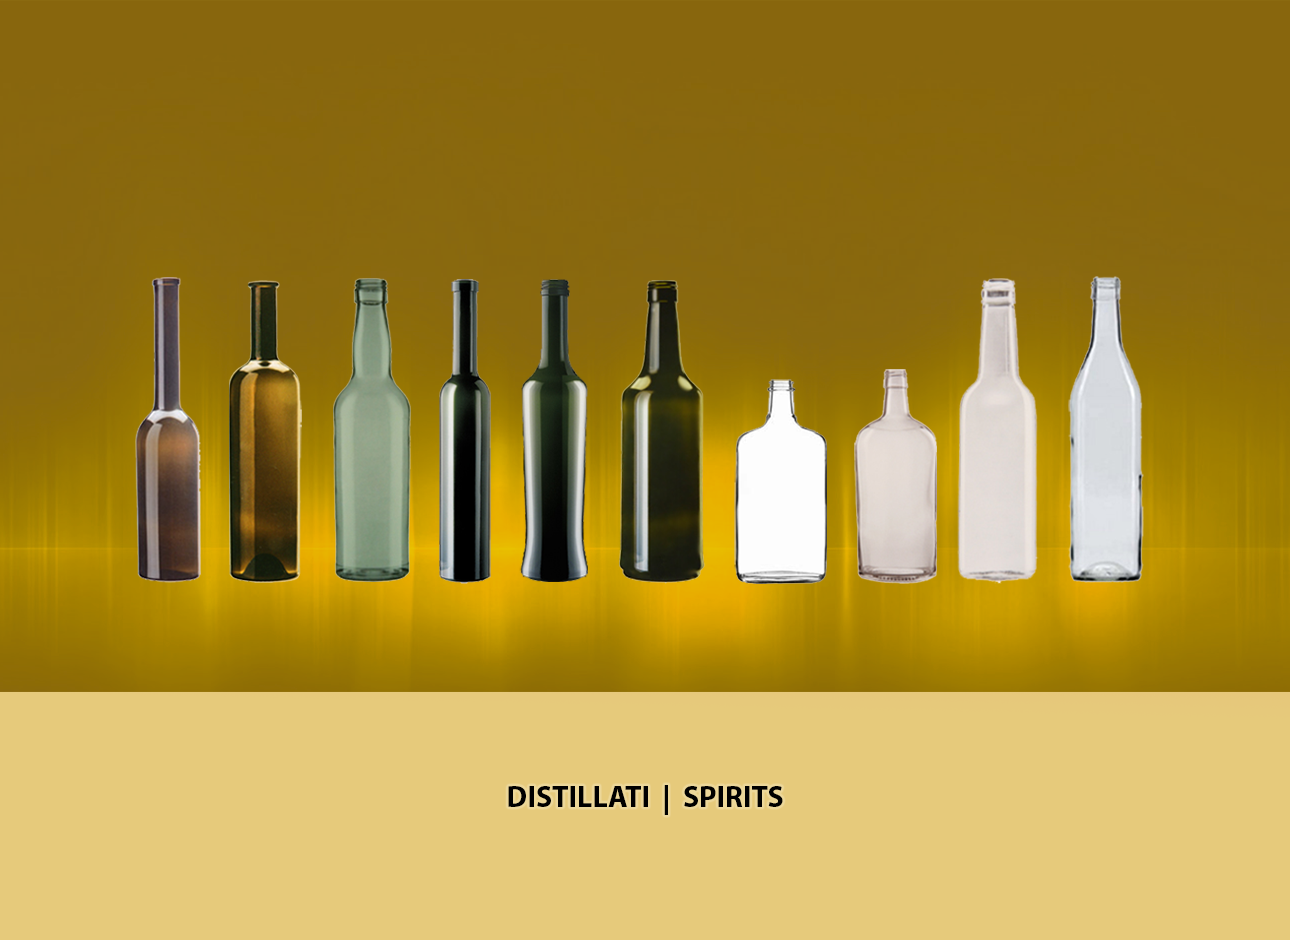 distillati-spirits